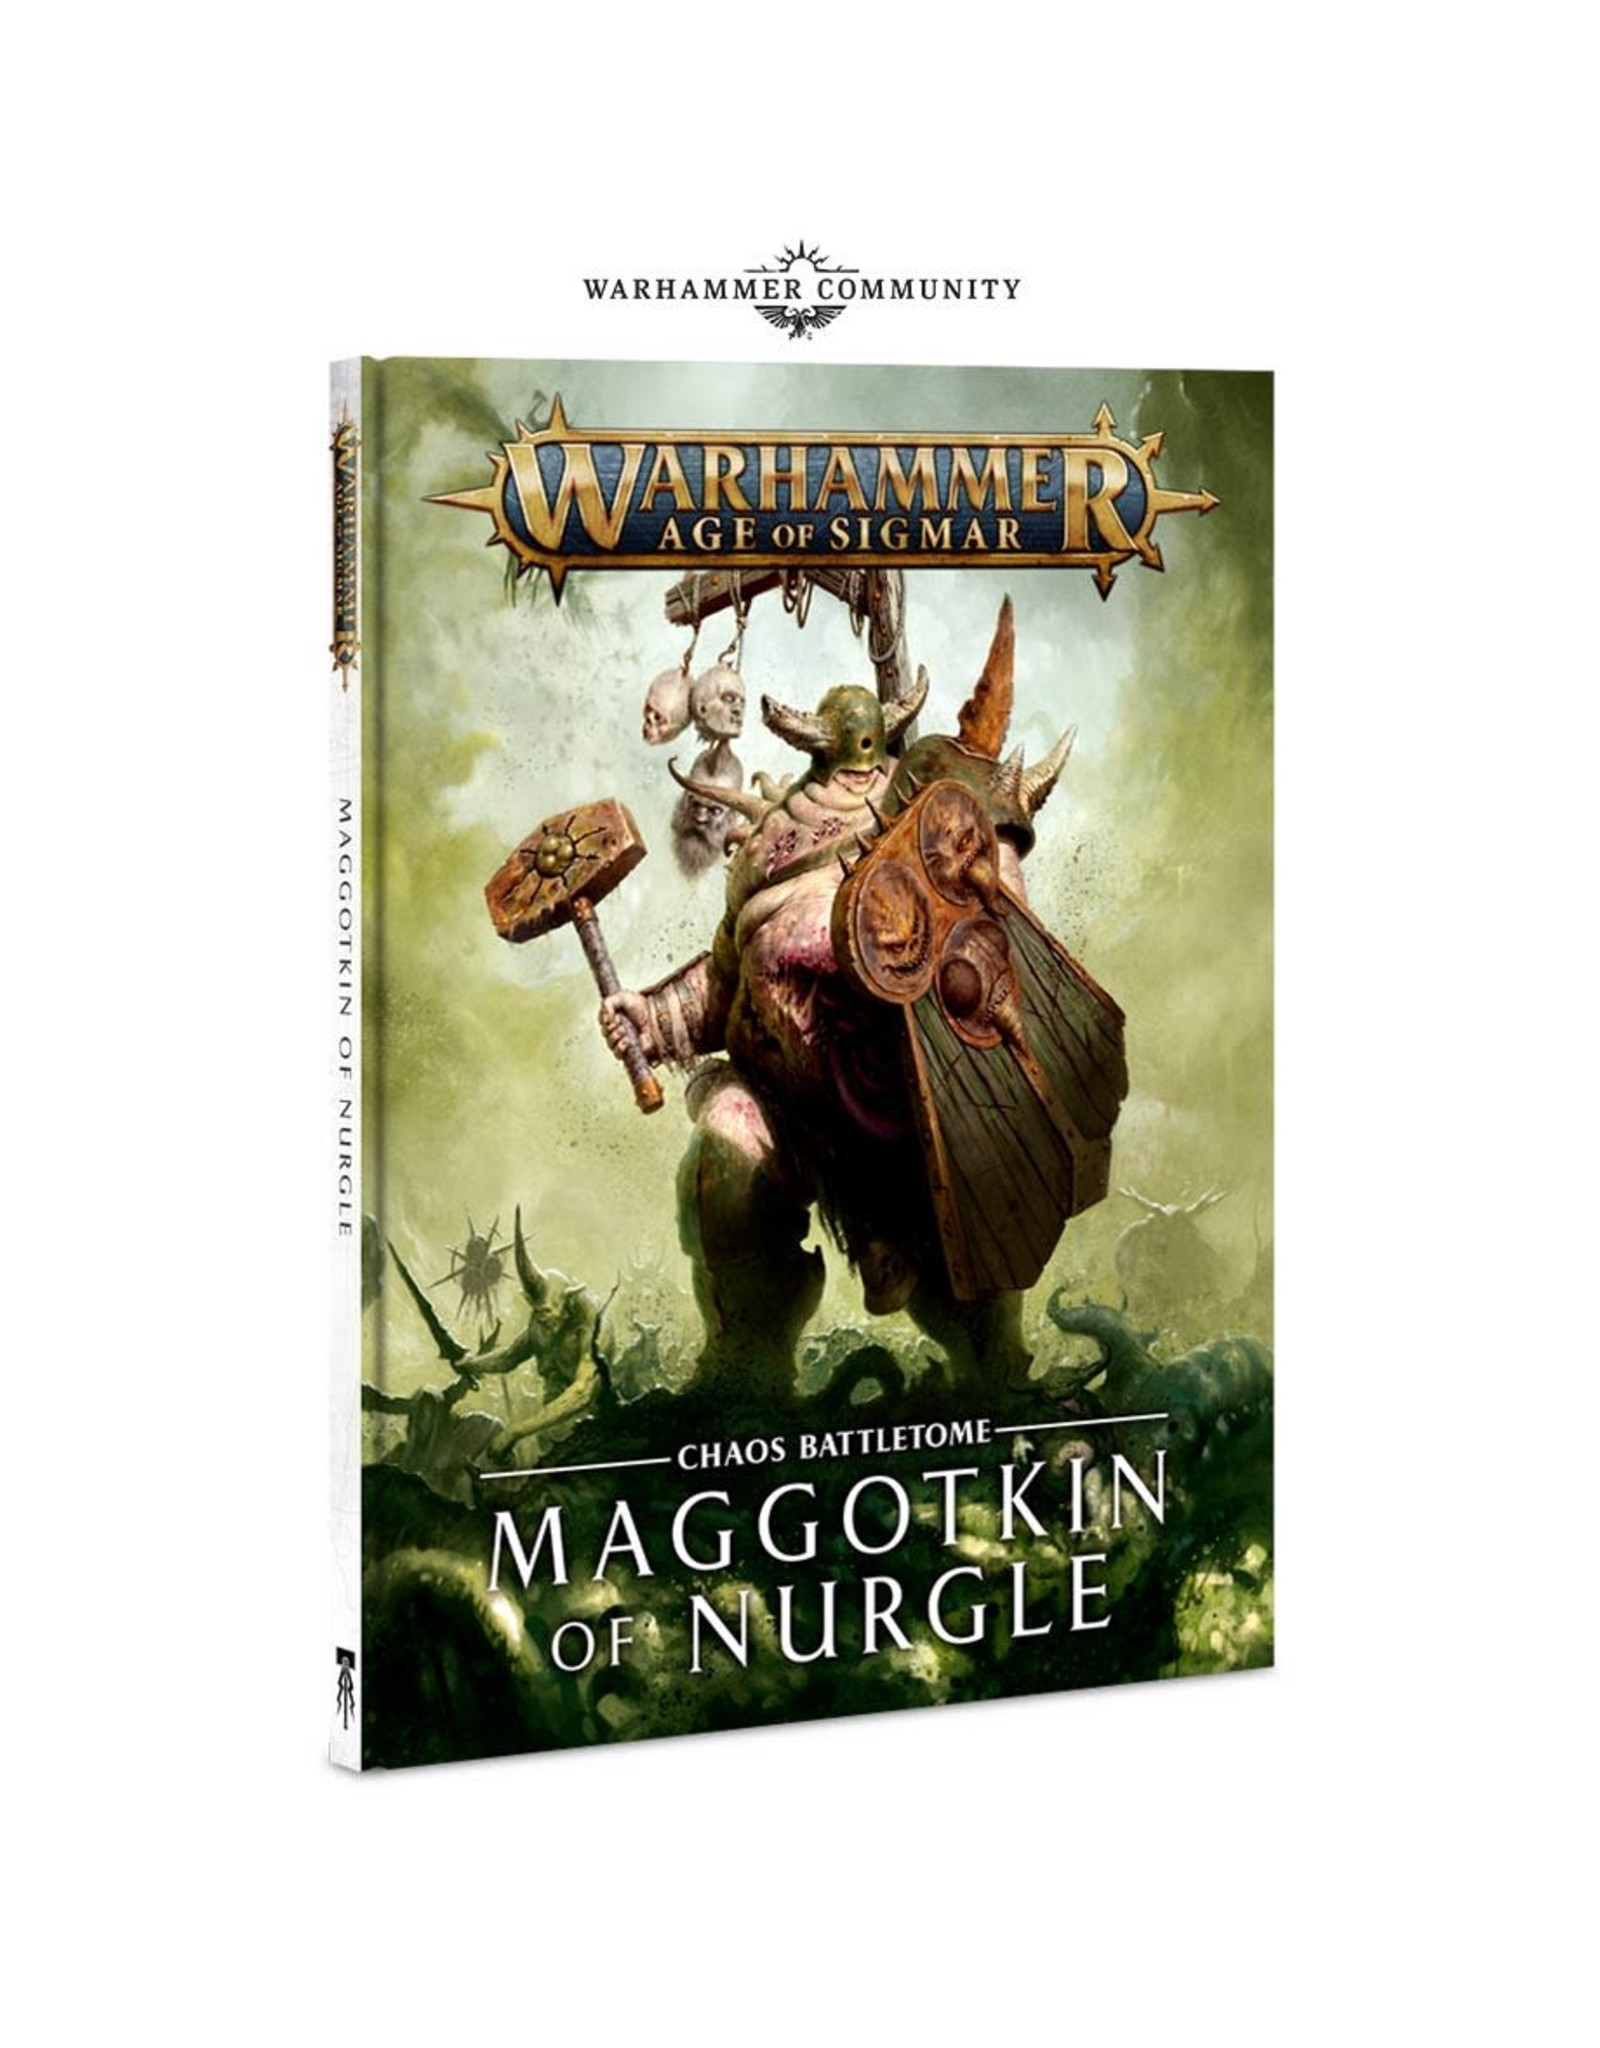 Age of Sigmar Battletome Maggotkin of Nurgle (HB) (EN)